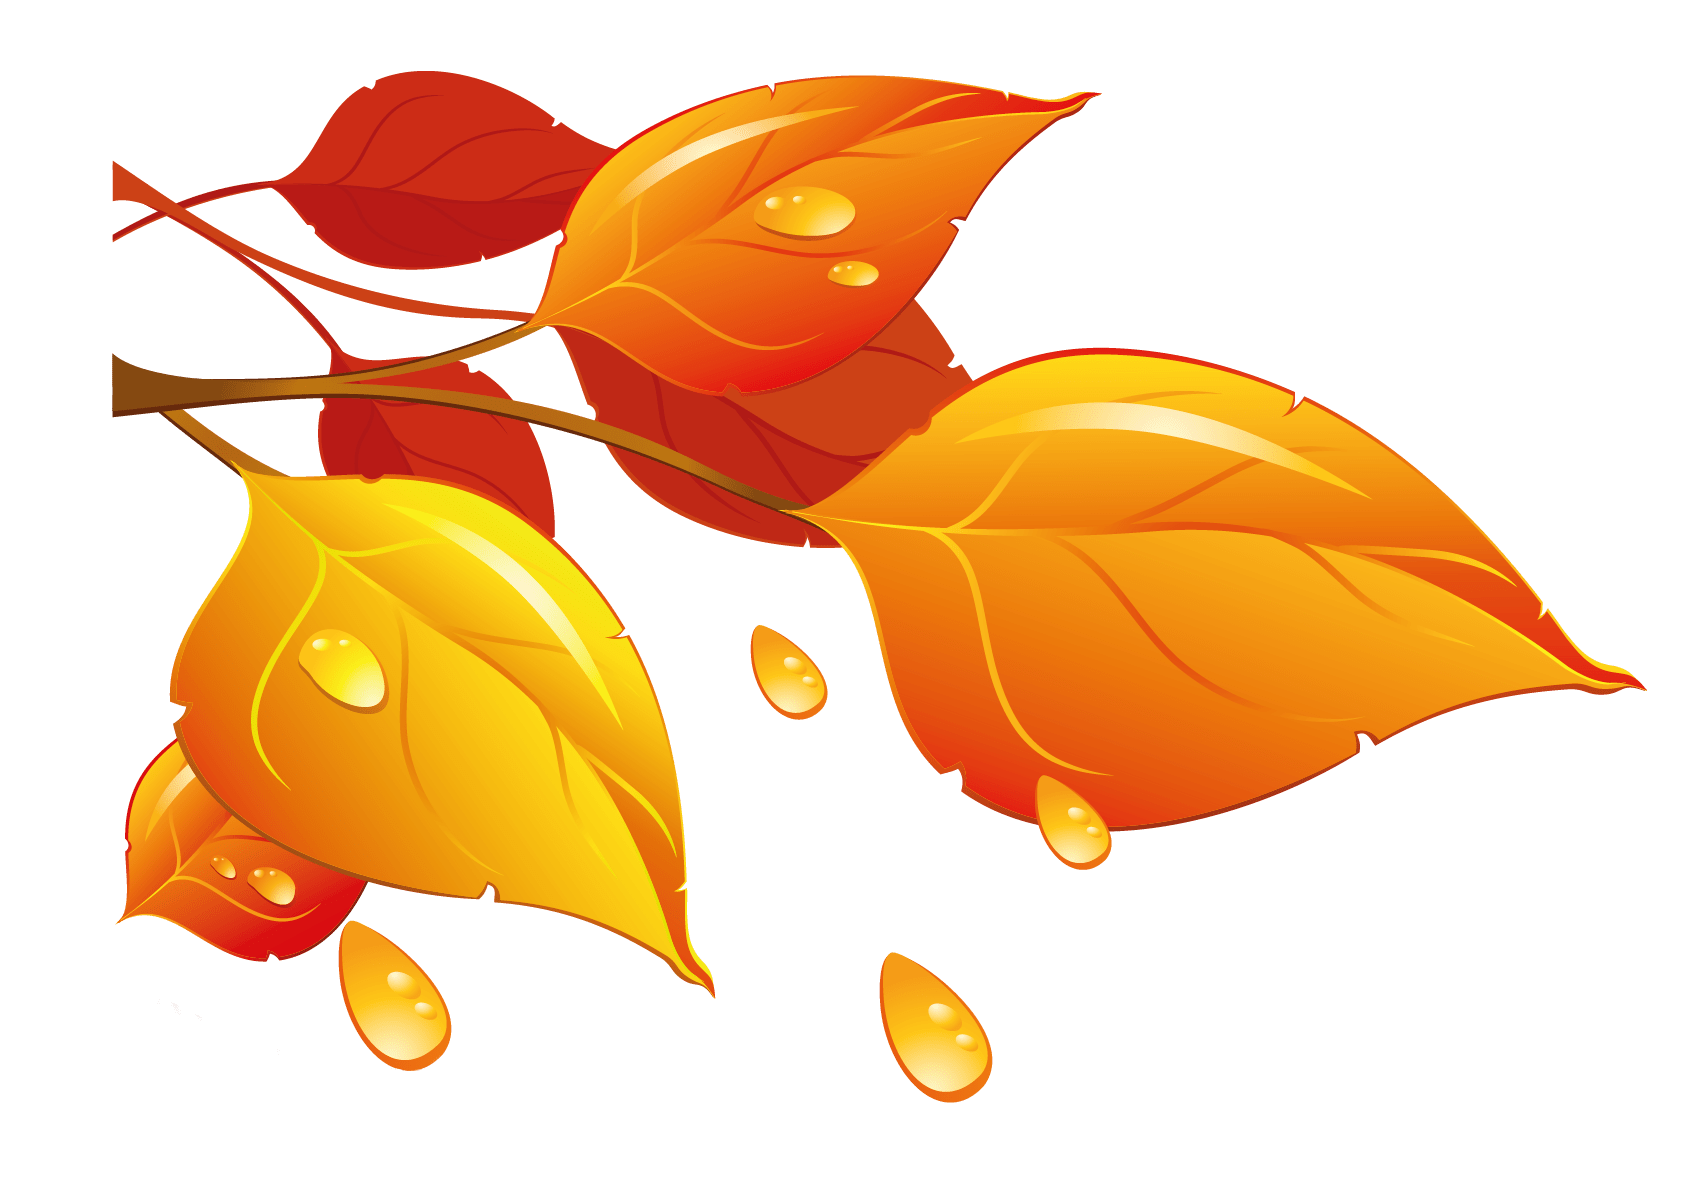 hight resolution of transparent autumn leaves png clipart